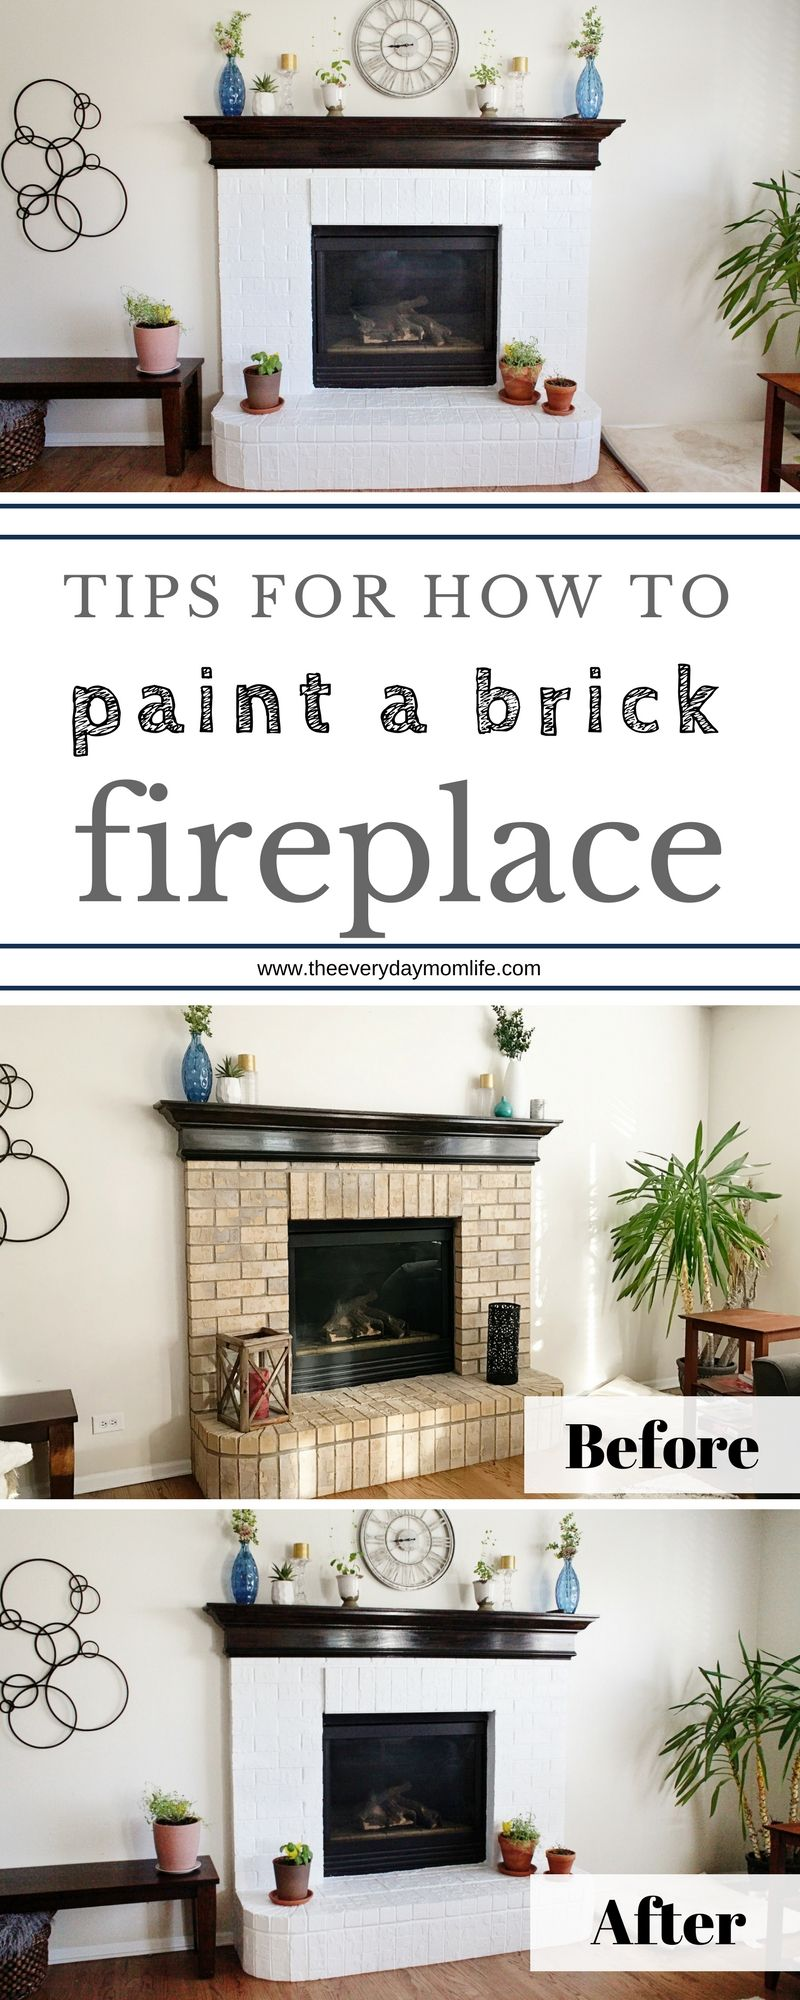 Tips For How To Paint A Brick Fireplace DIY Community Board